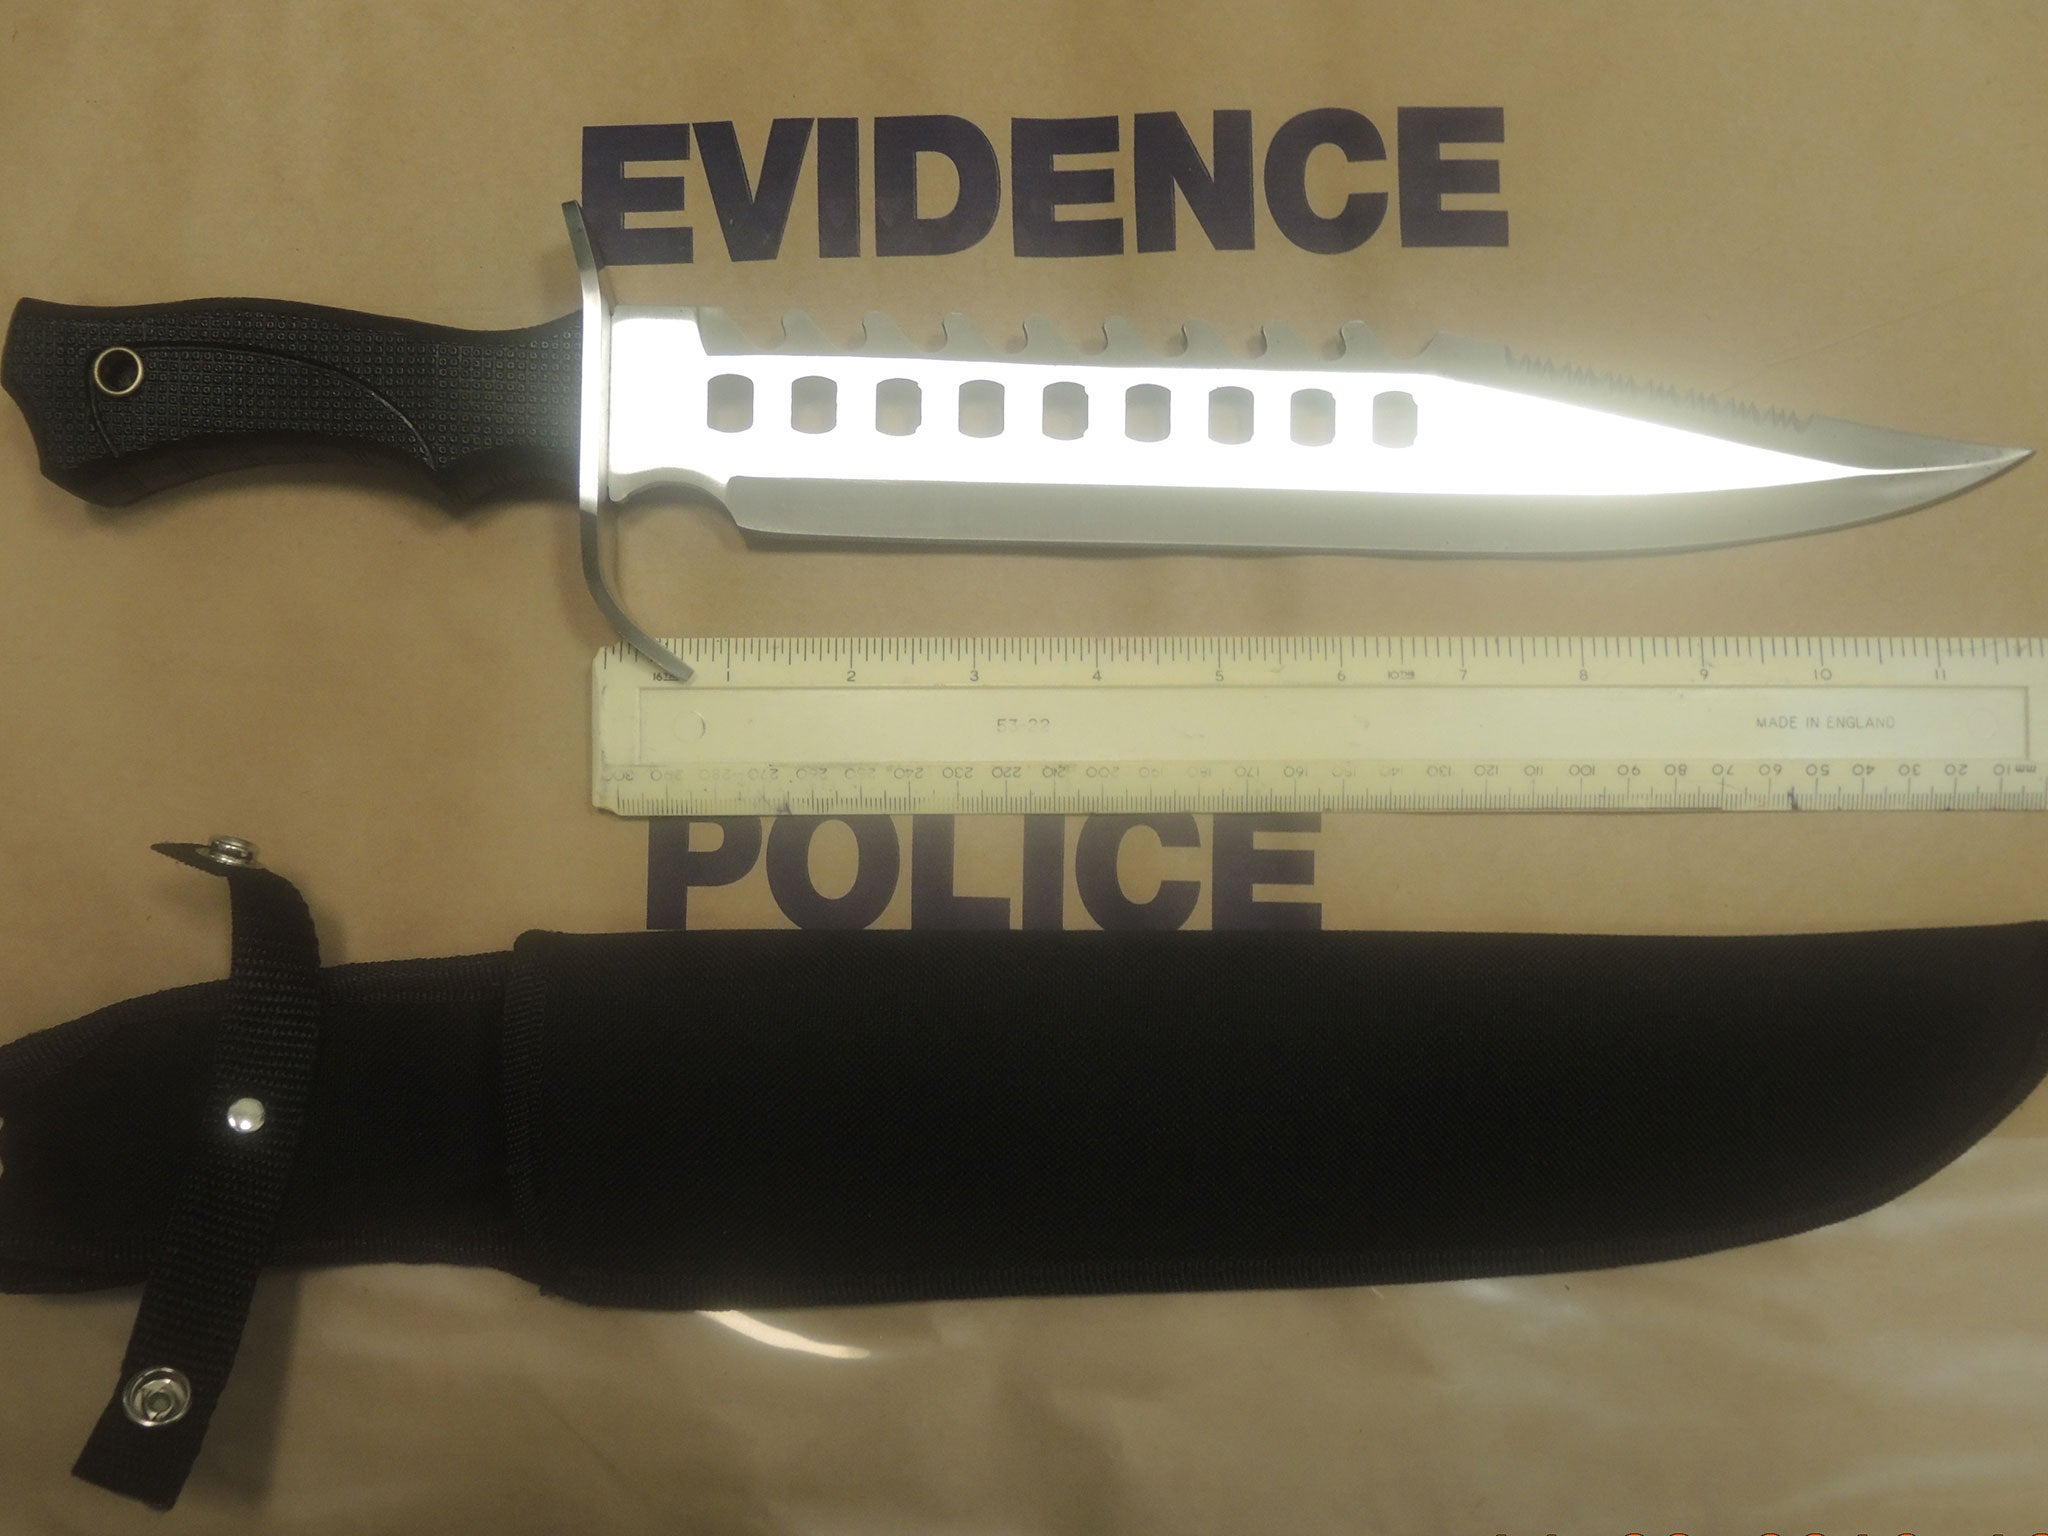 Knife crime offences rise to highest level since 2010 in England and Wales